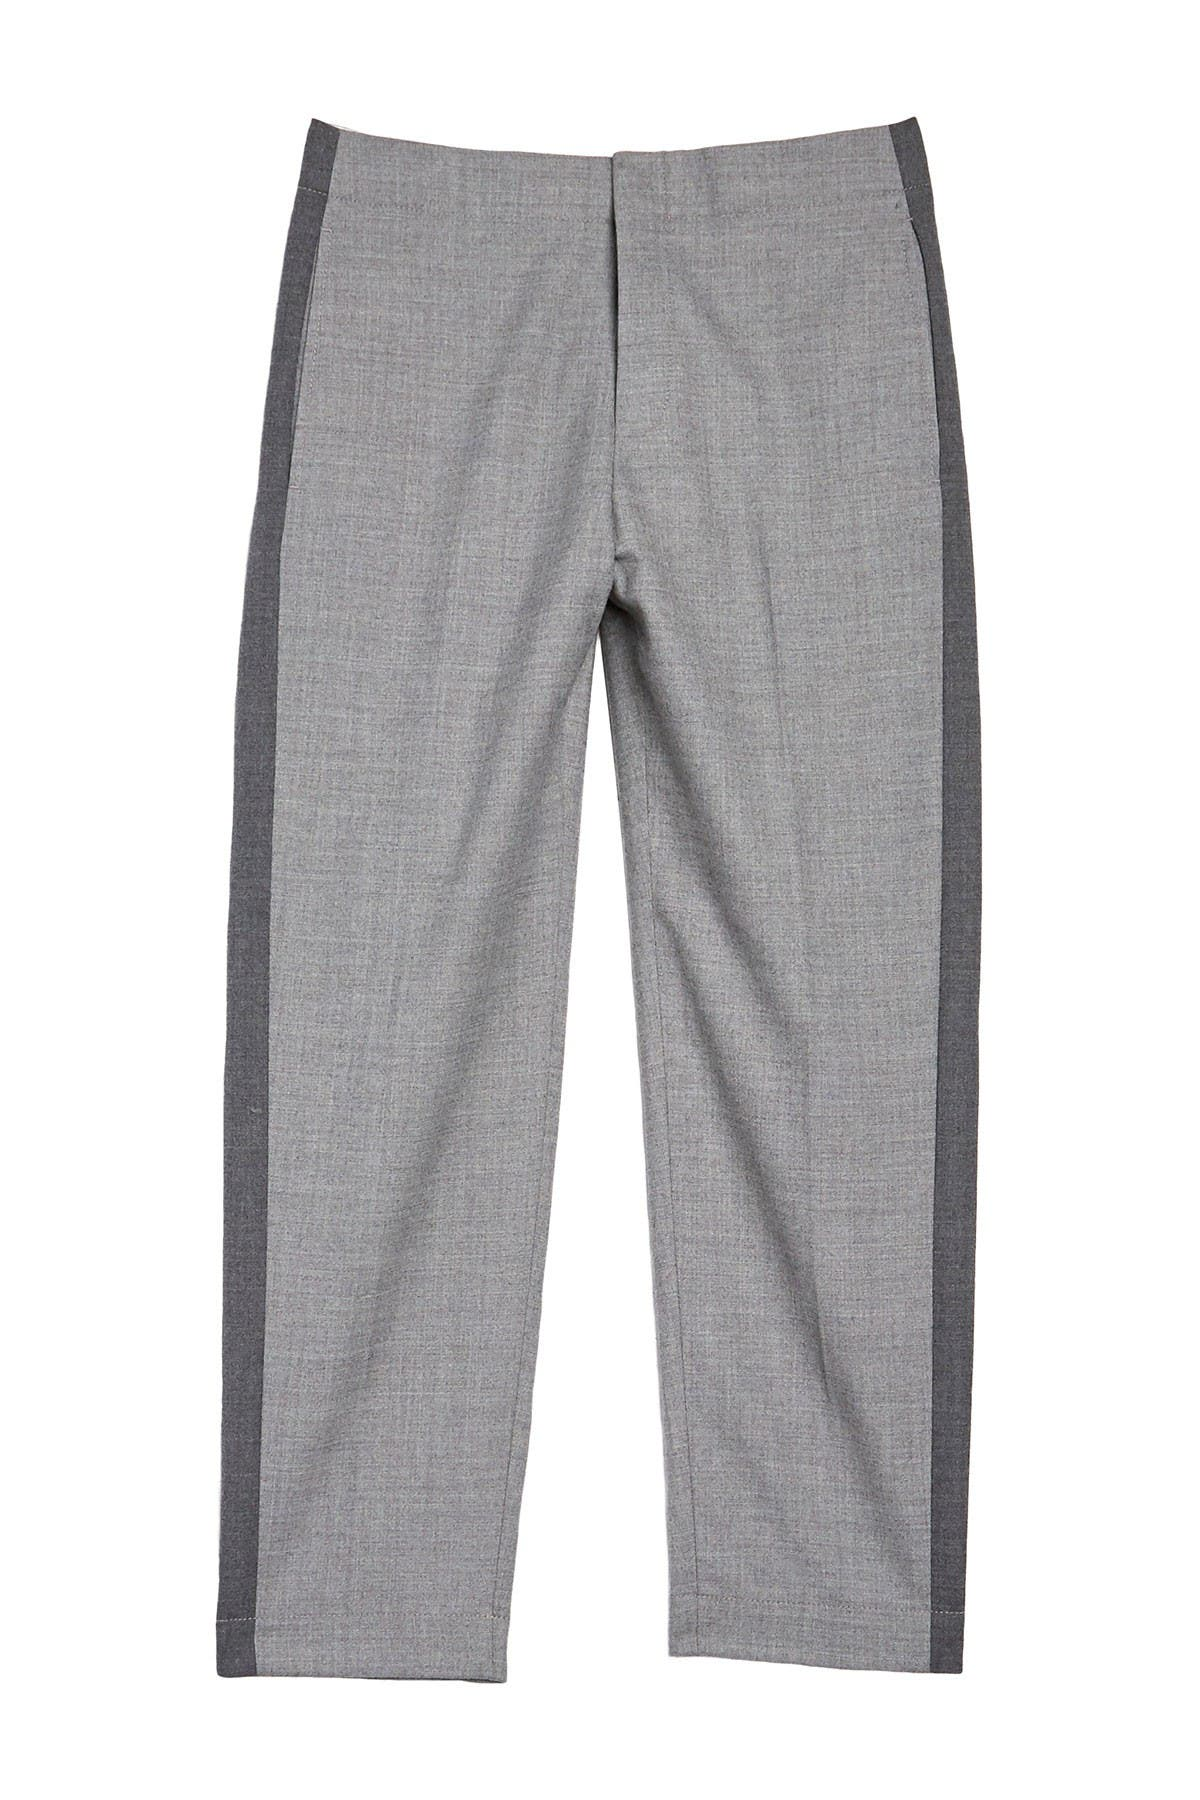 Image of CLUB MONACO Yanne Side Panel Trouser Pants